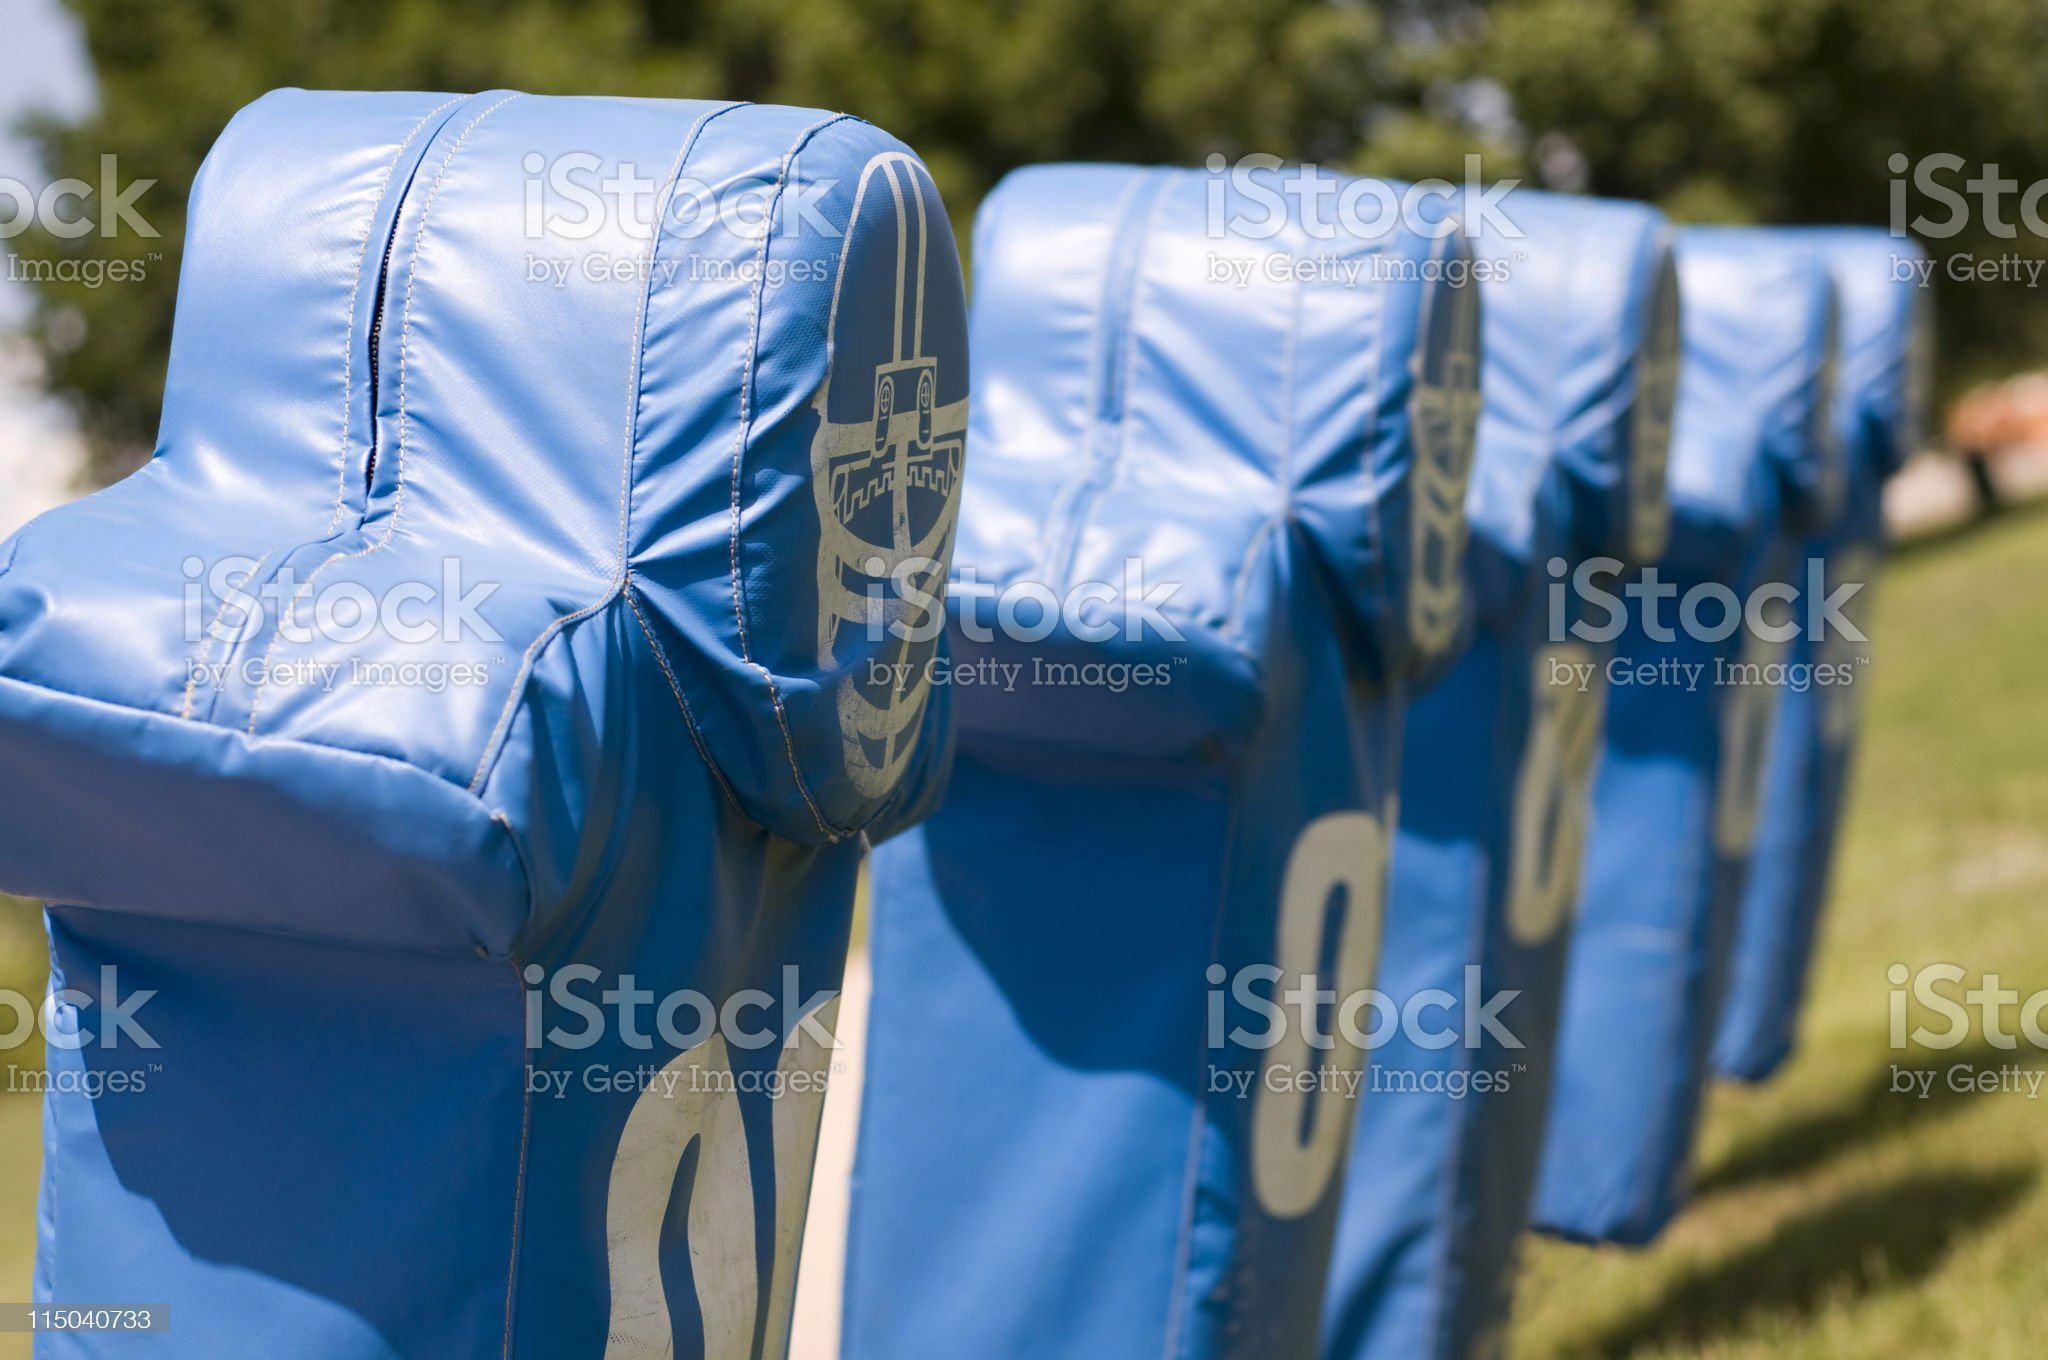 Football Practice Blocking Sled Training Dummies in a Row royalty-free stock photo